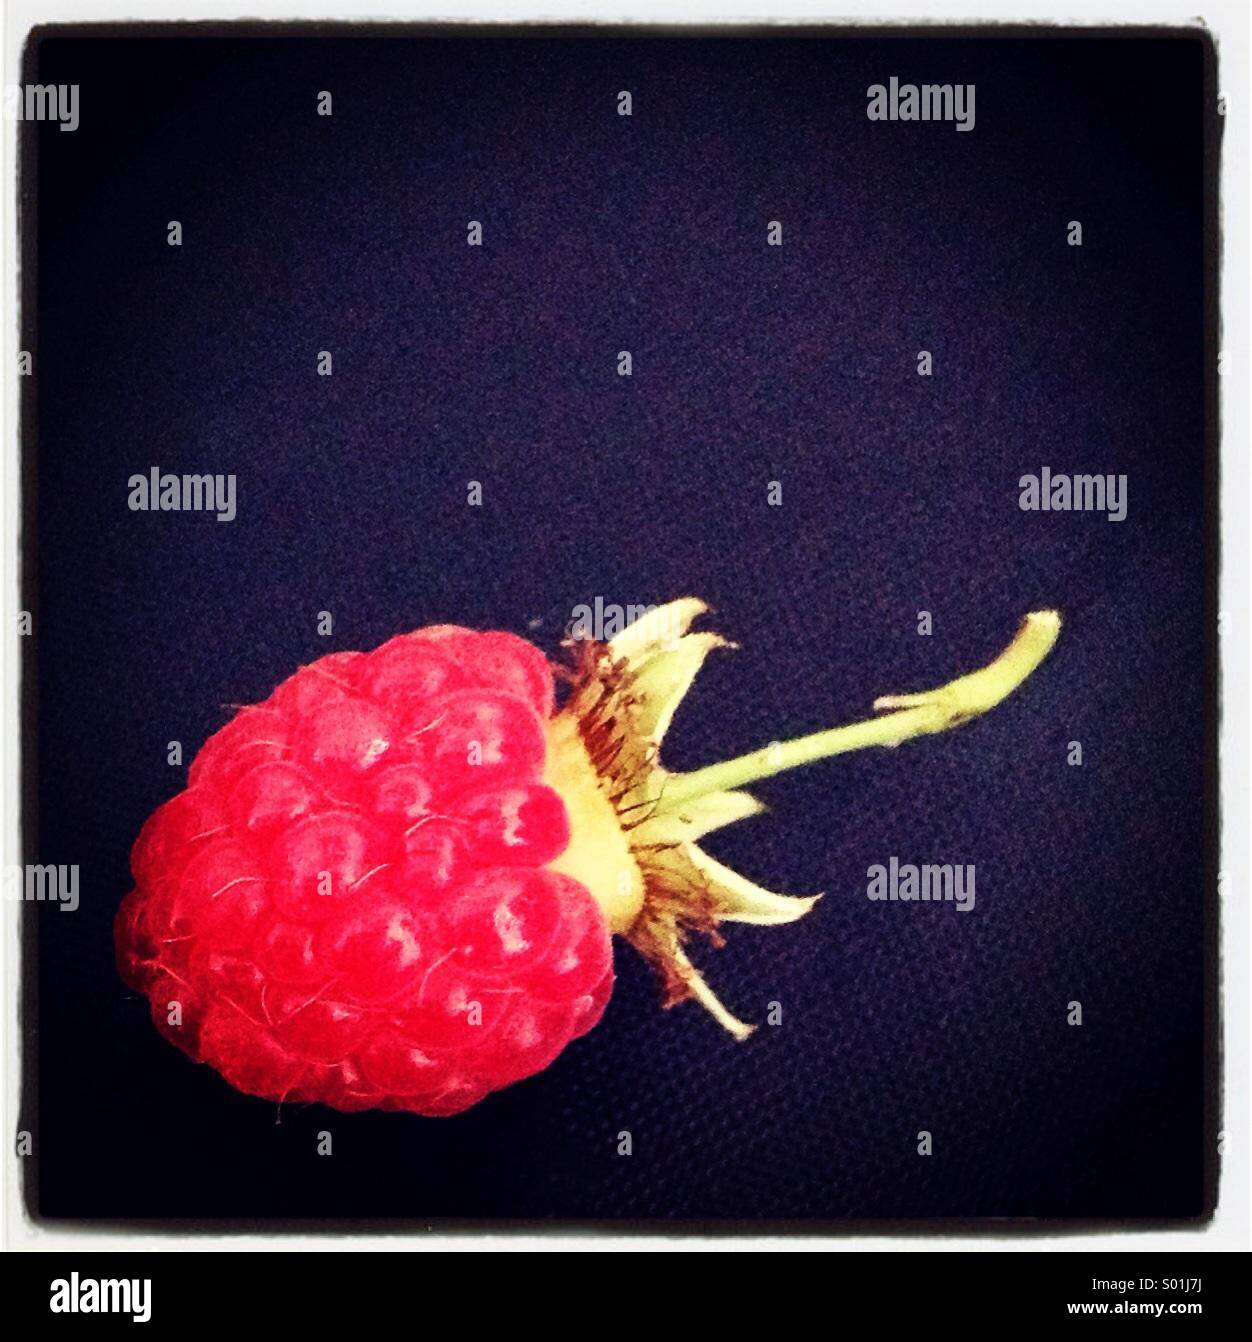 Single fresh raspberry on black background - Stock Image